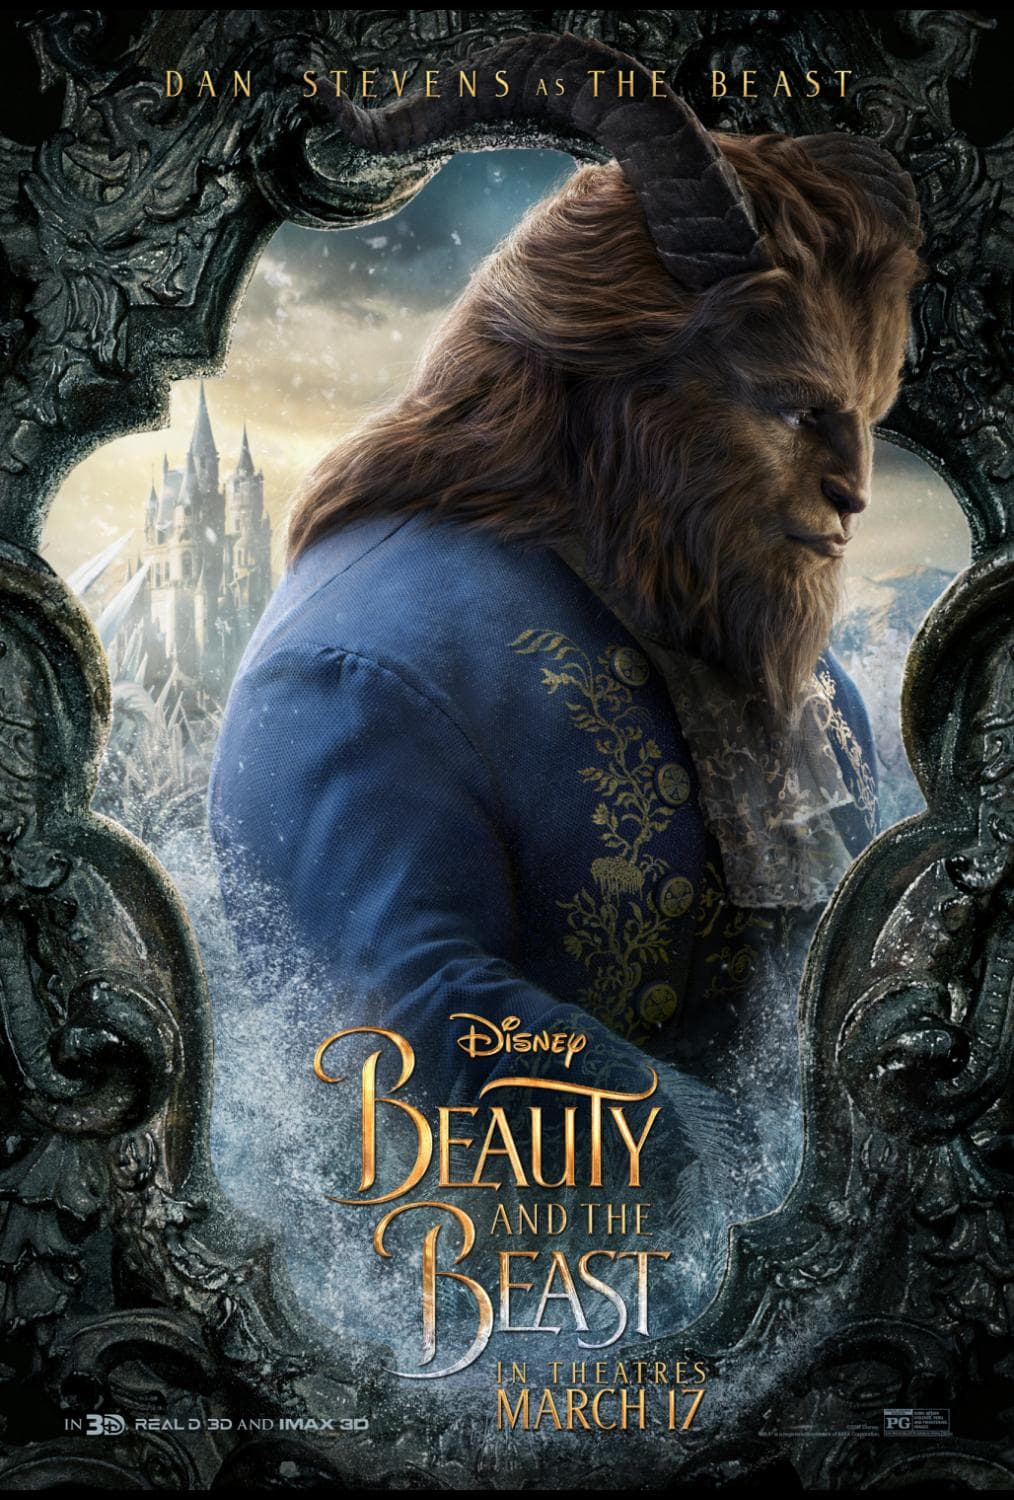 Beauty and the Beast Character Posters dan stevens the beast